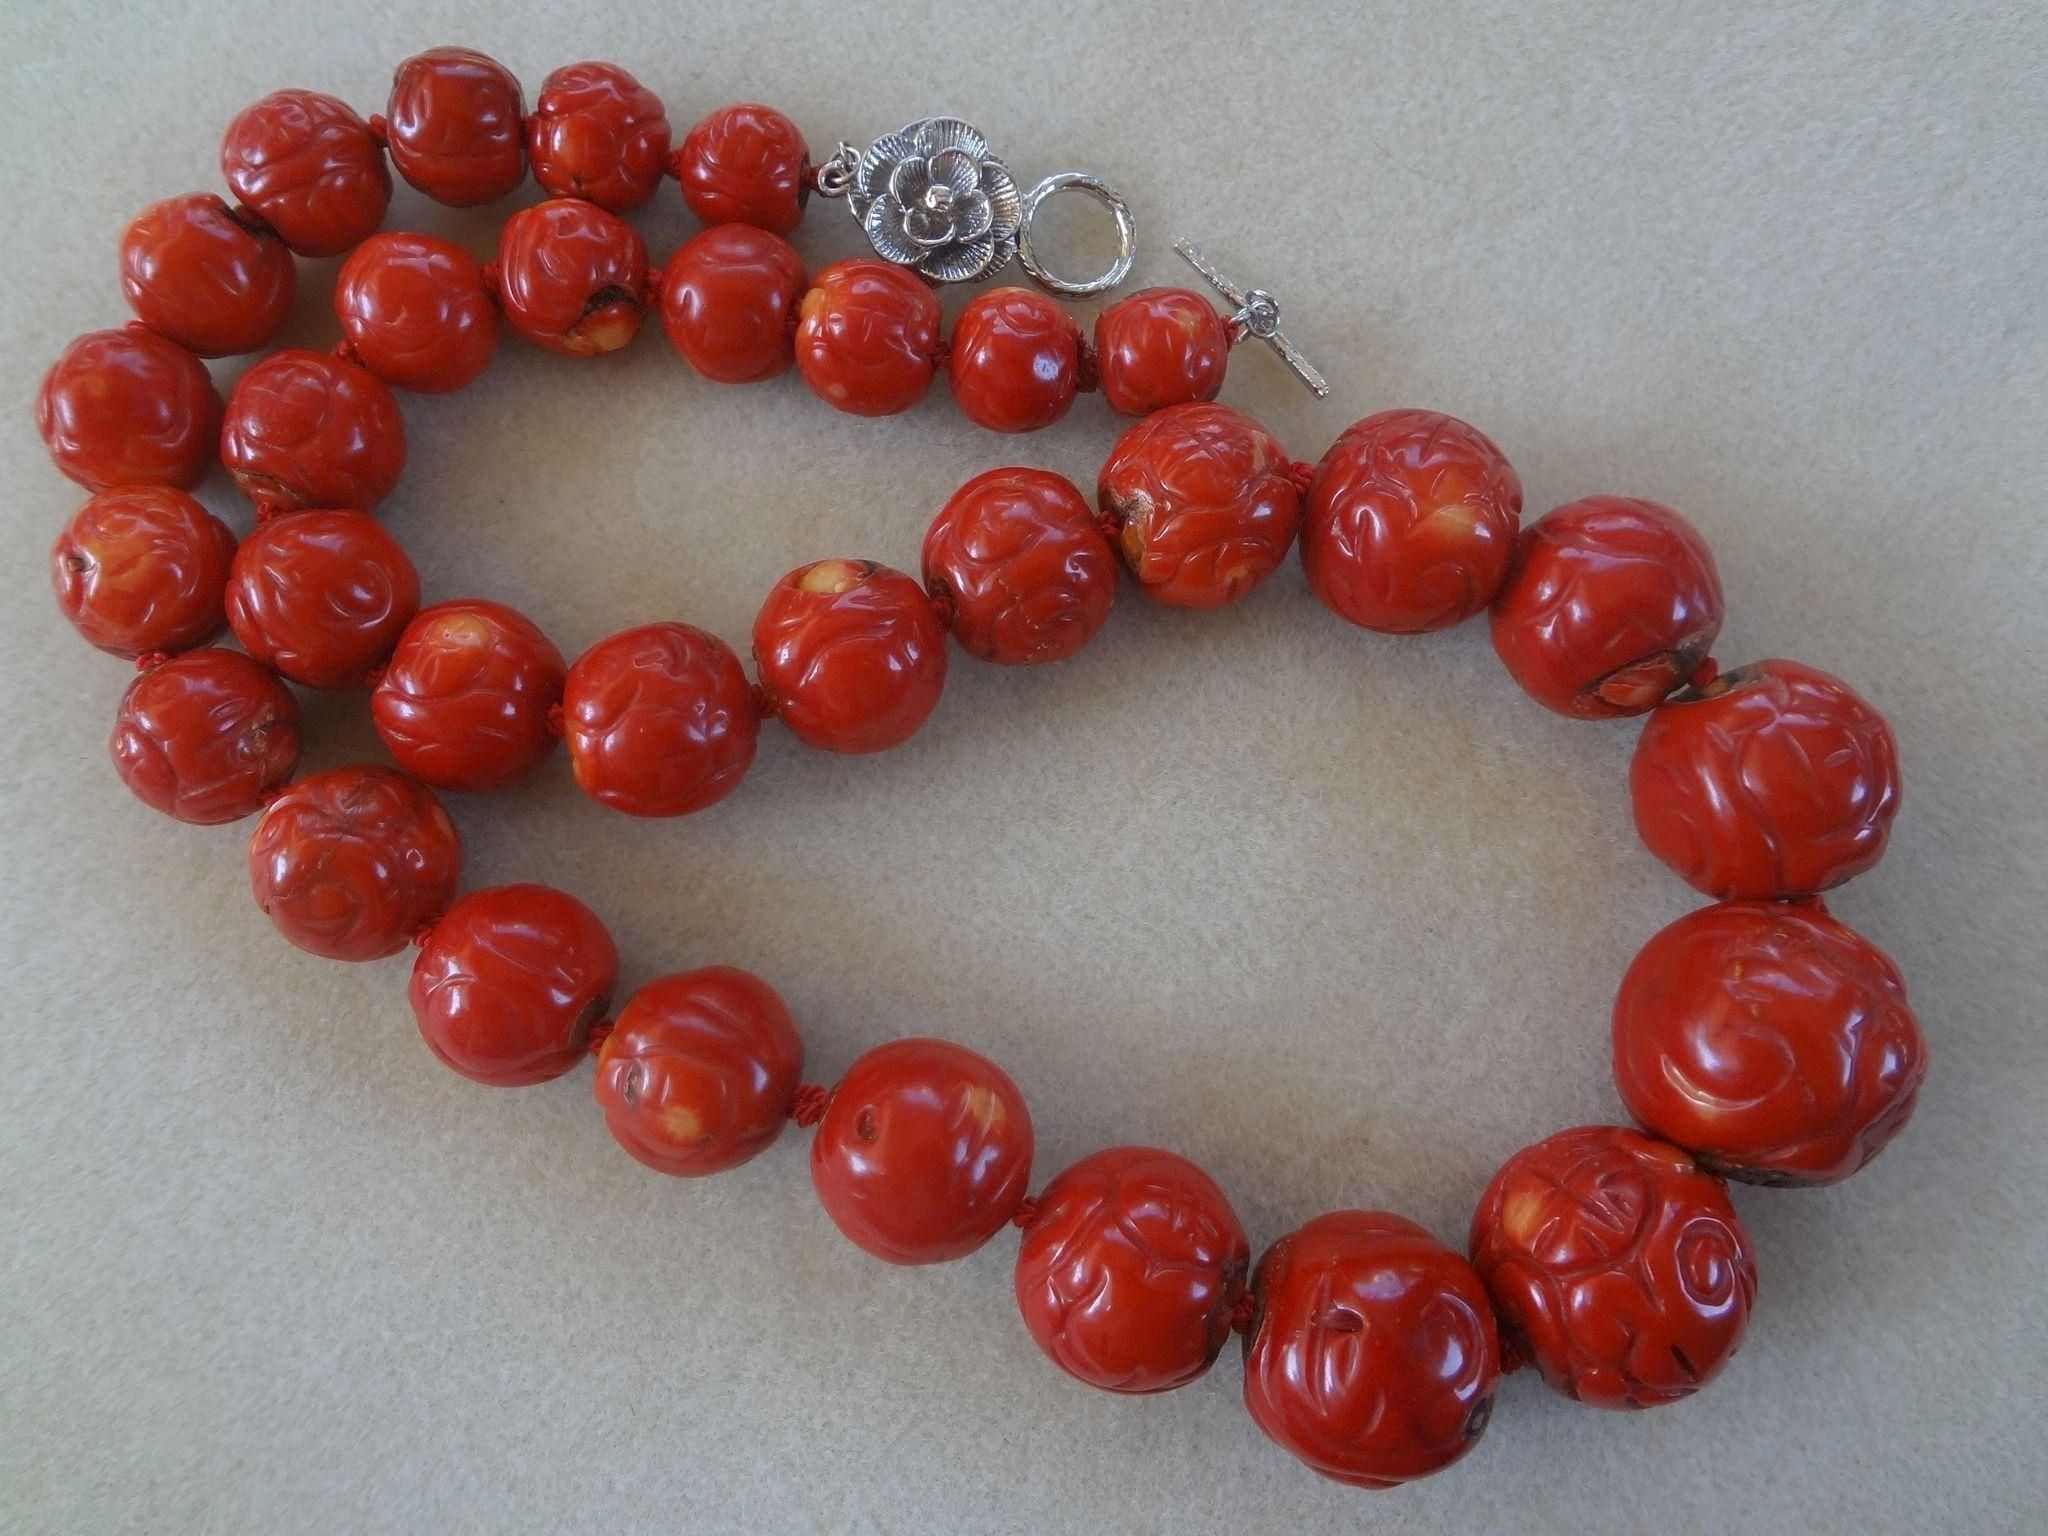 Bracelet and Earrings Set Stunning 8mm Natural Red Coral Necklace Presented in A Beautiful Jewellery Gift Box